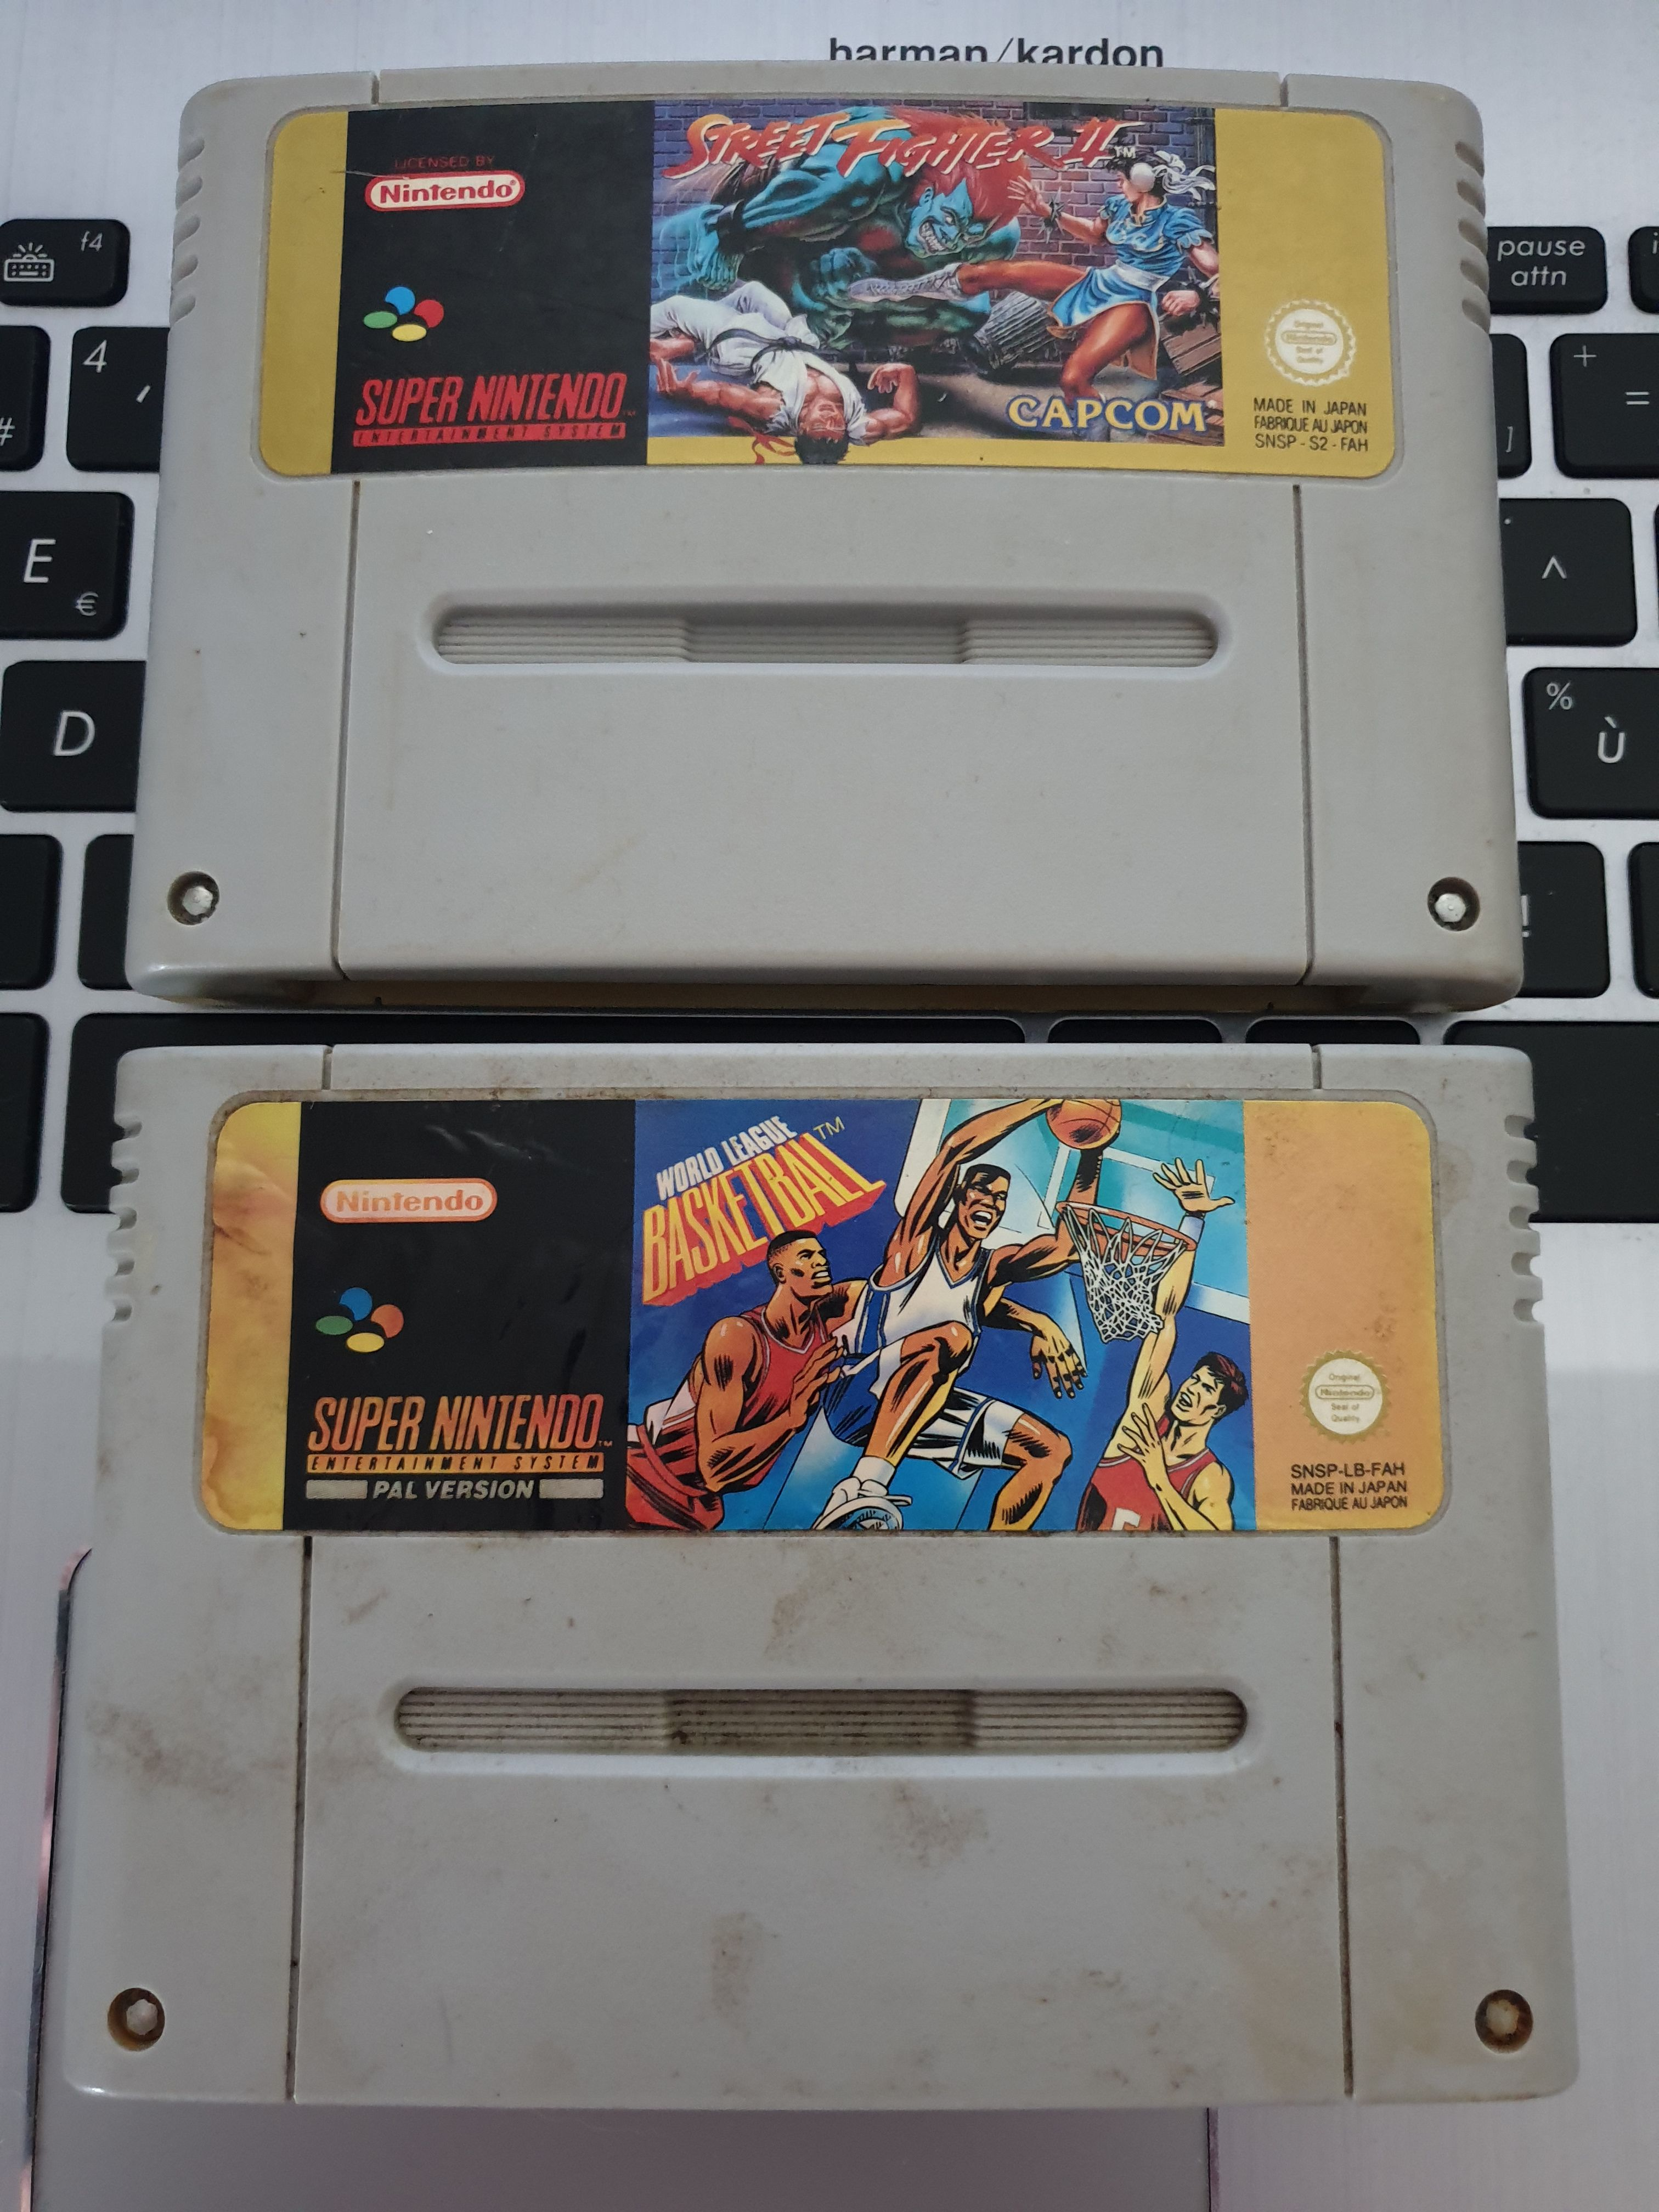 [ECHANGE] GB / NES / SNES / Wii / GBA / N64 / NDS / Guides / orphelins GuXH1l